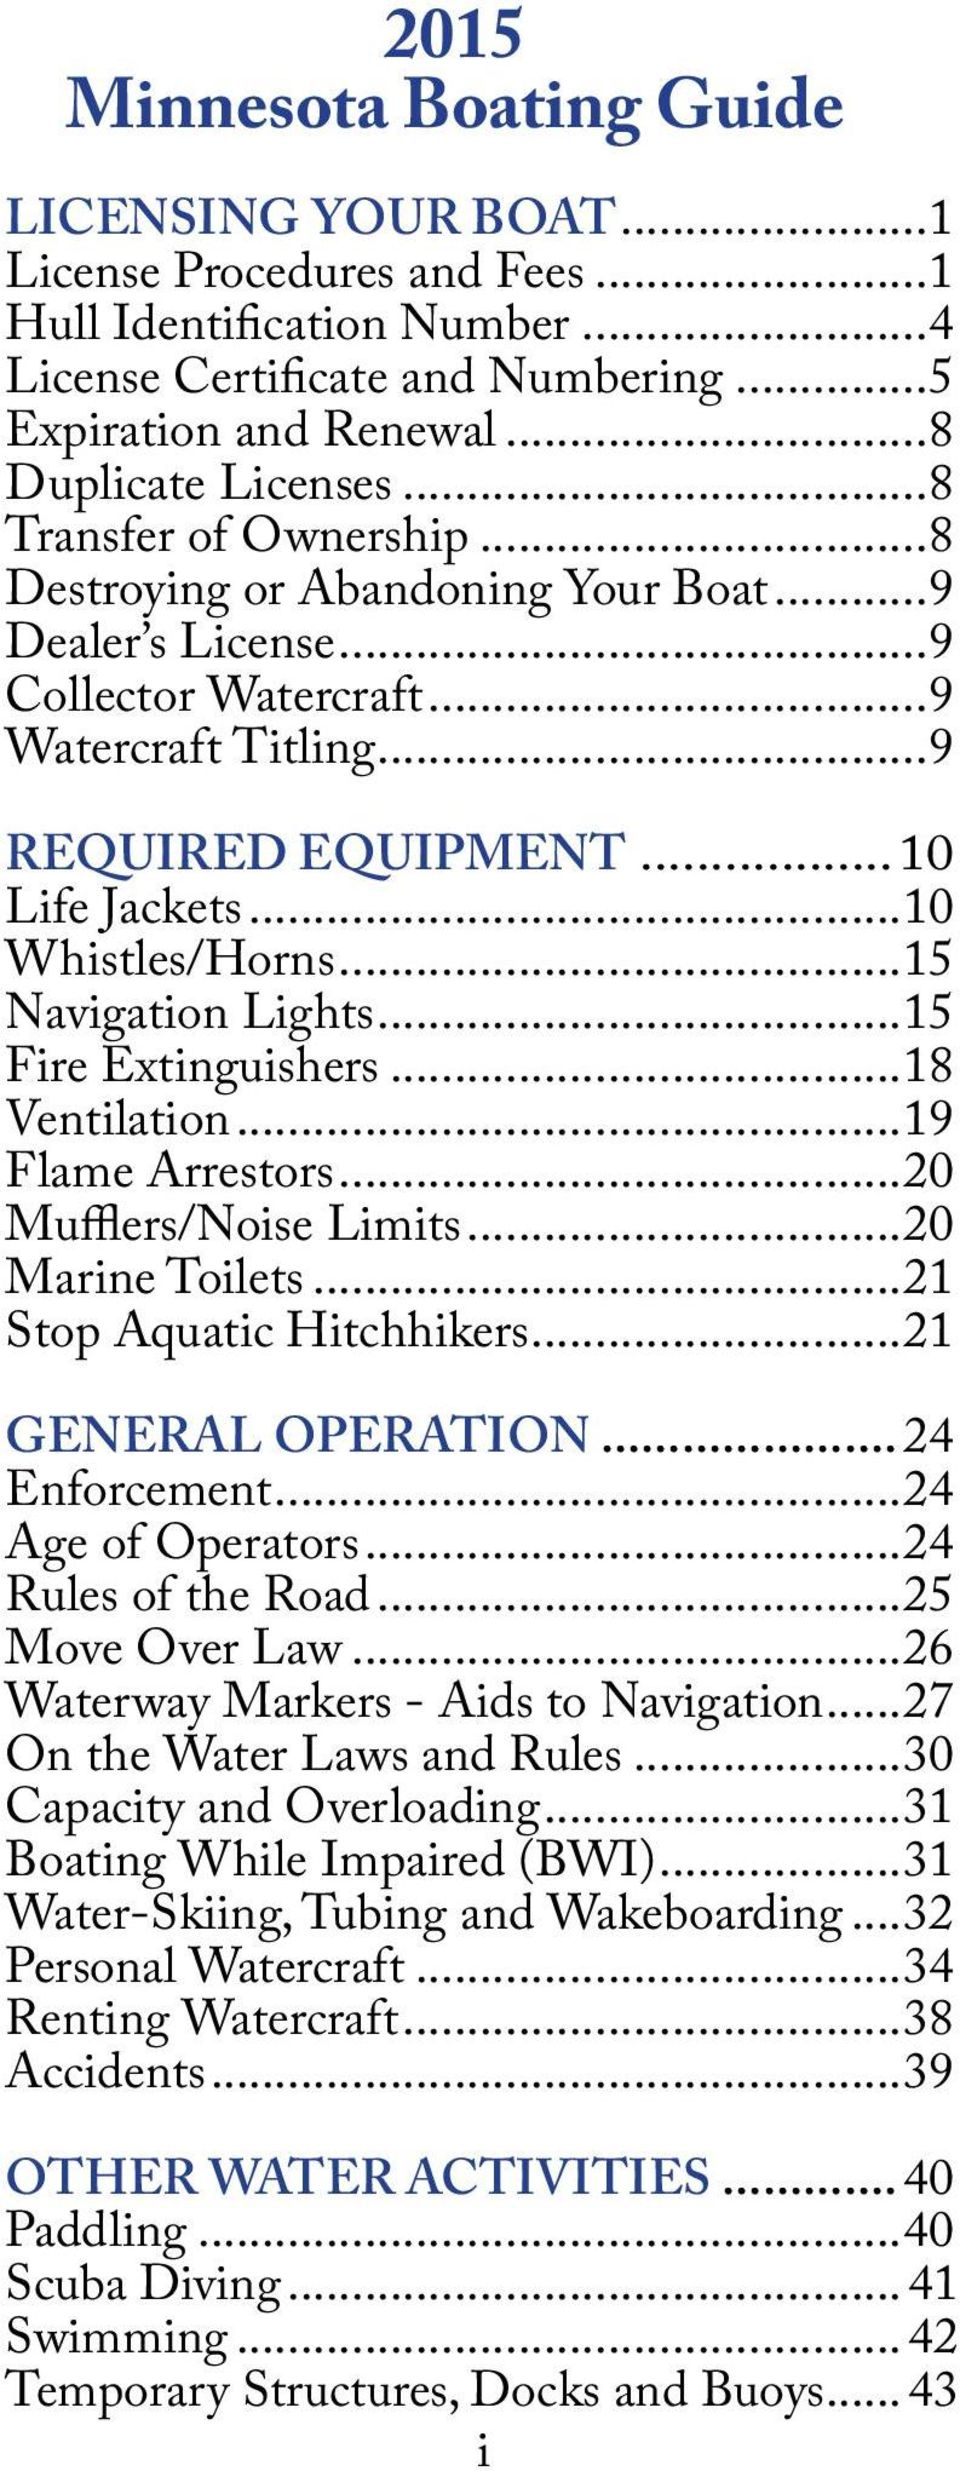 ..15 Navigation Lights...15 Fire Extinguishers...18 Ventilation...19 Flame Arrestors...20 Mufflers/Noise Limits...20 Marine Toilets...21 Stop Aquatic Hitchhikers...21 GENERAL OPERATION...24 Enforcement.